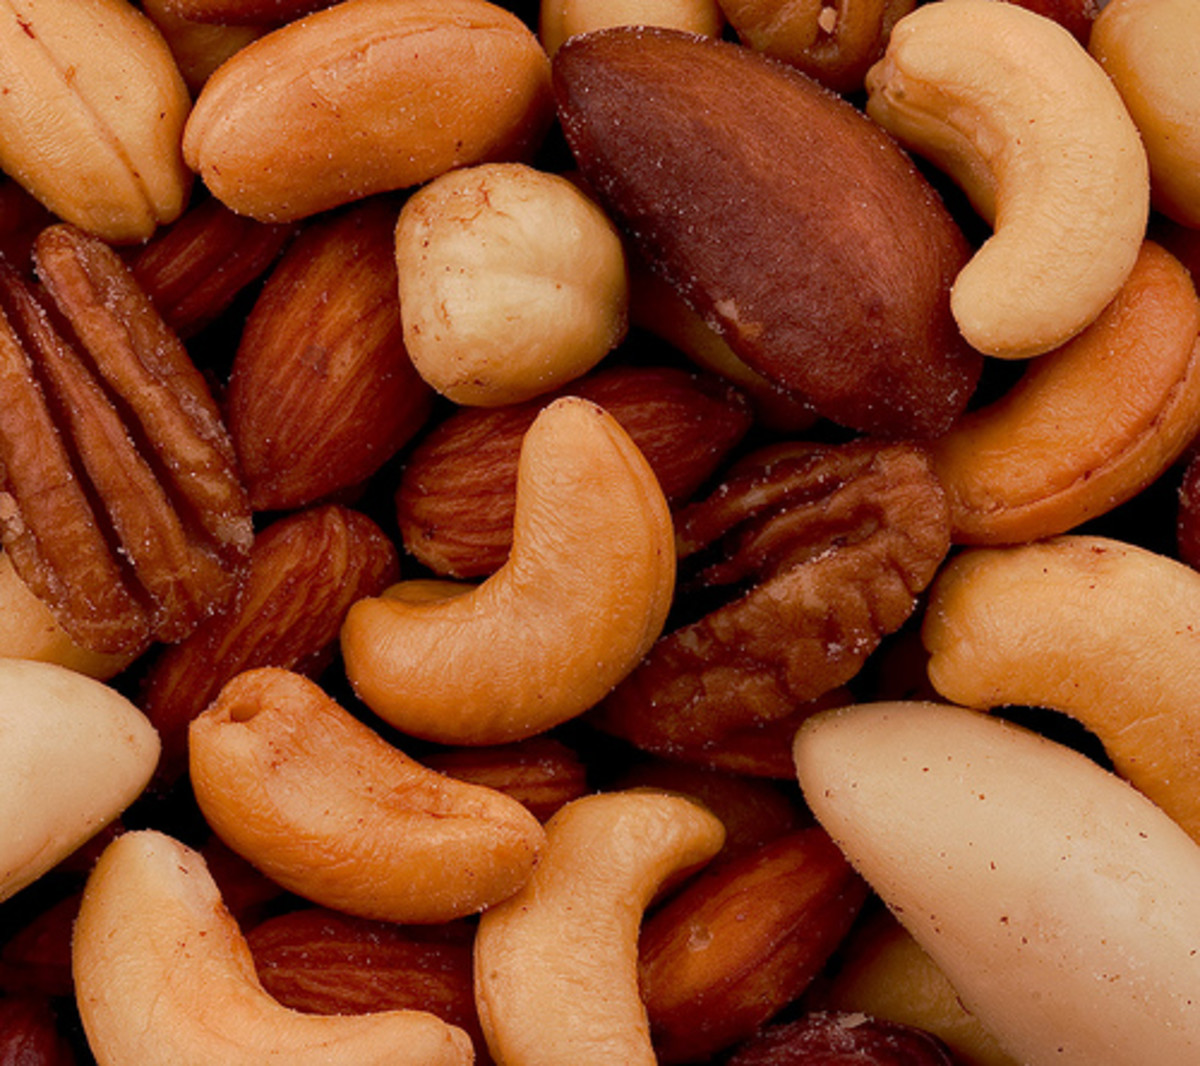 Mixed nuts- pecans, cashews, Brazil nuts, a good source of Vitamin E